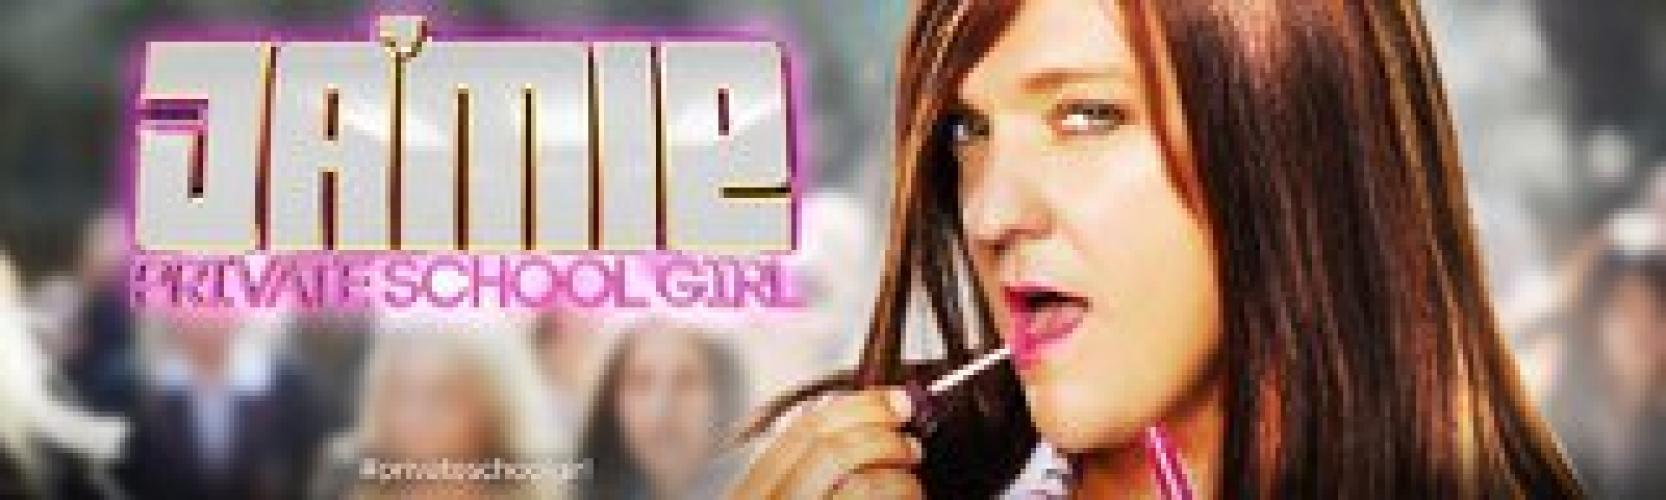 Ja'mie: Private School Girl next episode air date poster